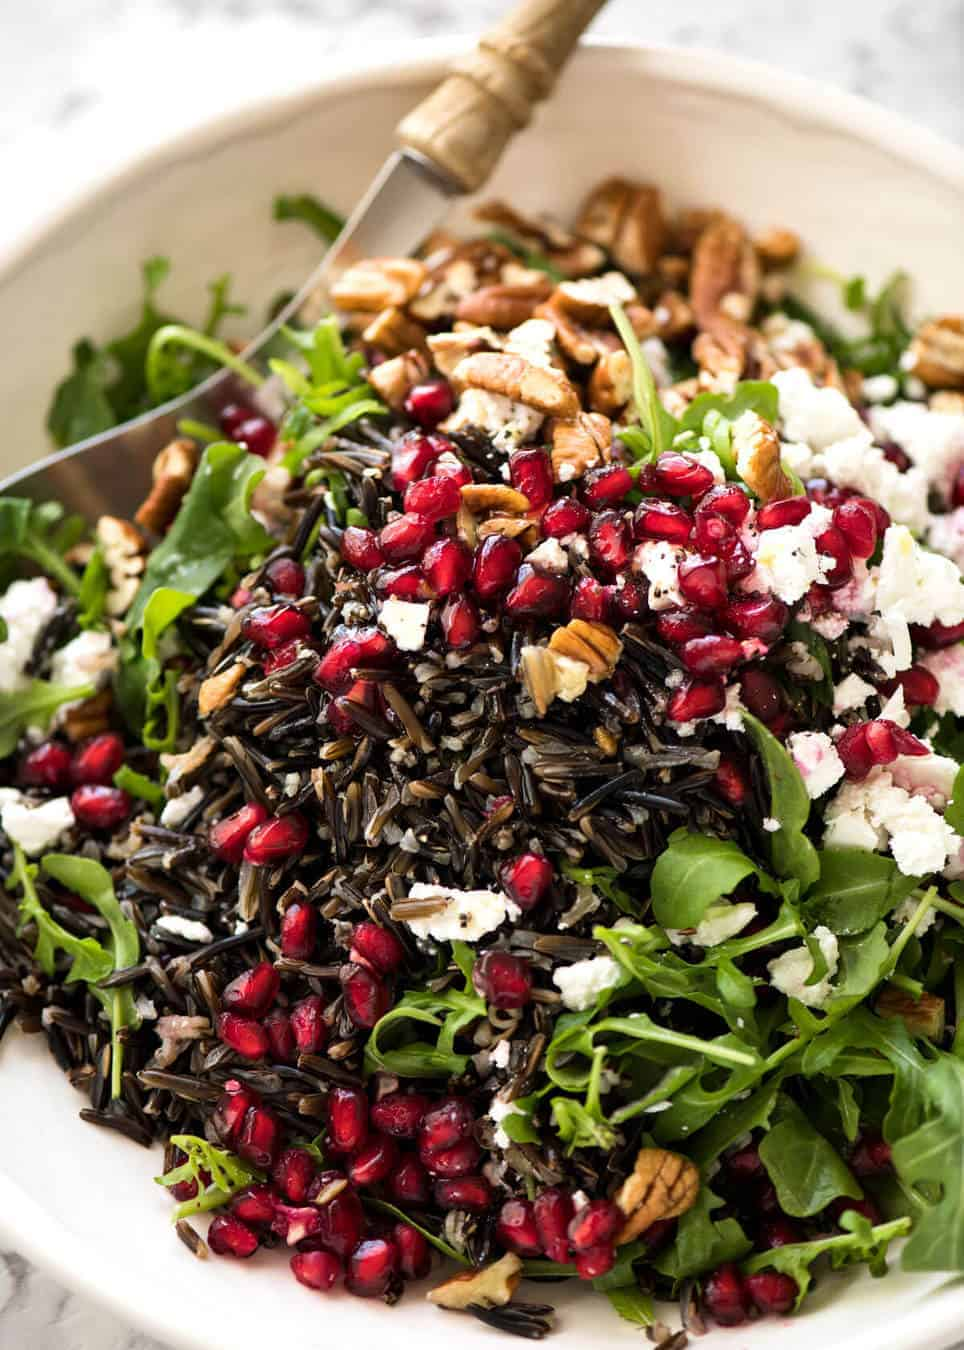 This Wild Rice Salad is a salad for celebrations! Stellar flavour combination - wild rice, pomegranate, pecans, rocket / arugula, green onions, cranberries and feta. recipetineats.com